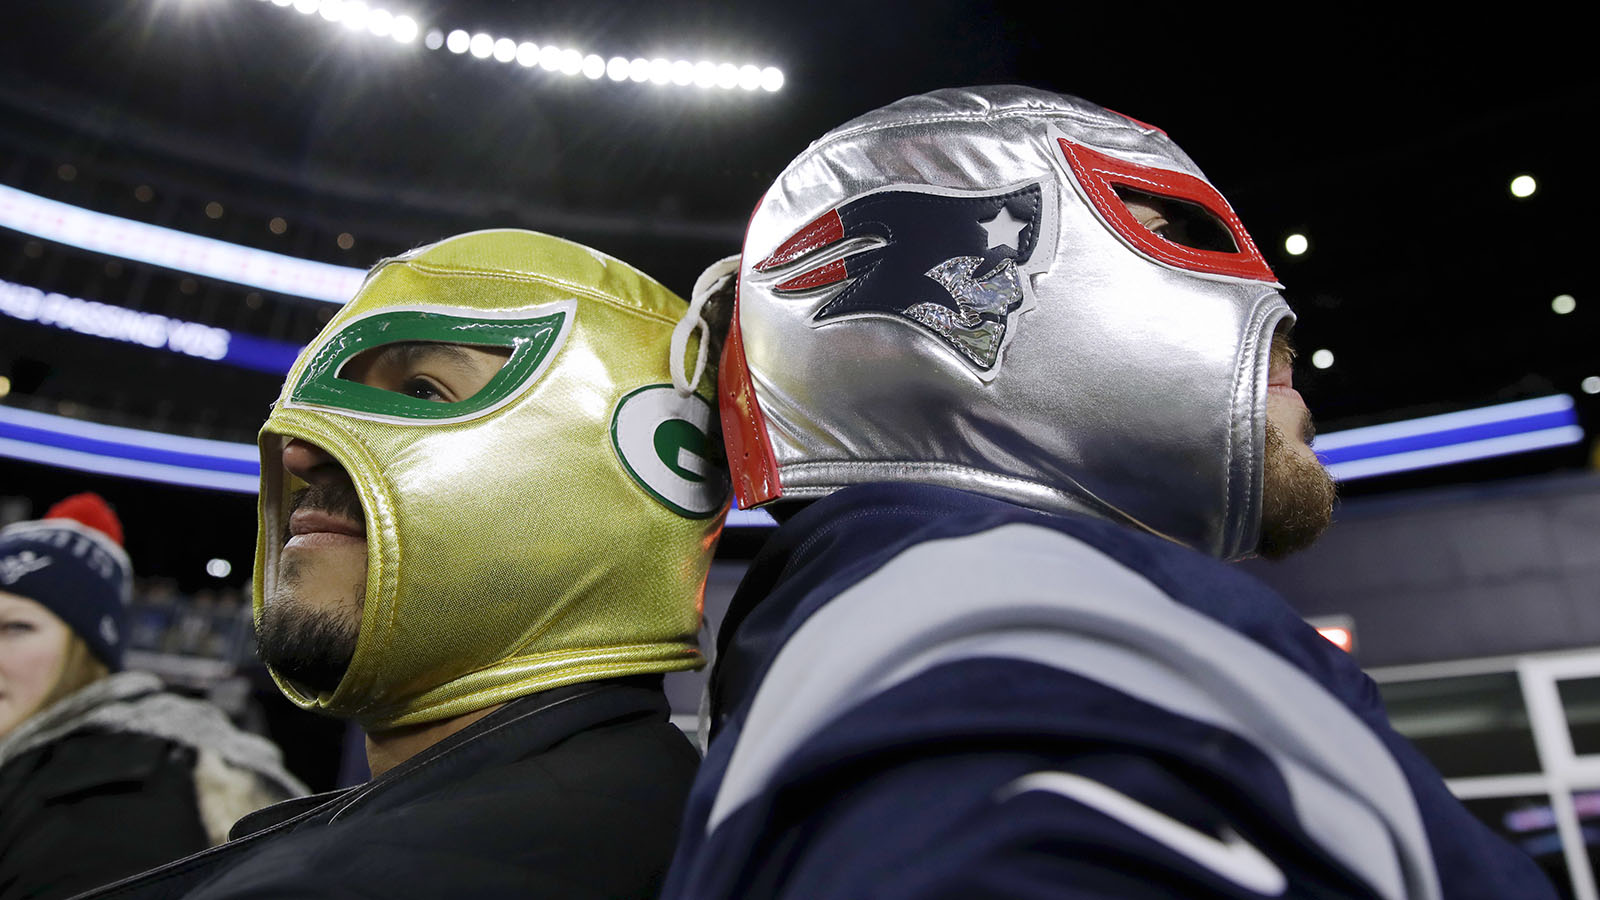 A Green Bay Packers fan, left, and a New England Patriots fan stand back to back before an NFL football game between the Patriots and the Packers, Sunday, Nov. 4, 2018, in Foxborough, Mass. (AP Photo/Charles Krupa)